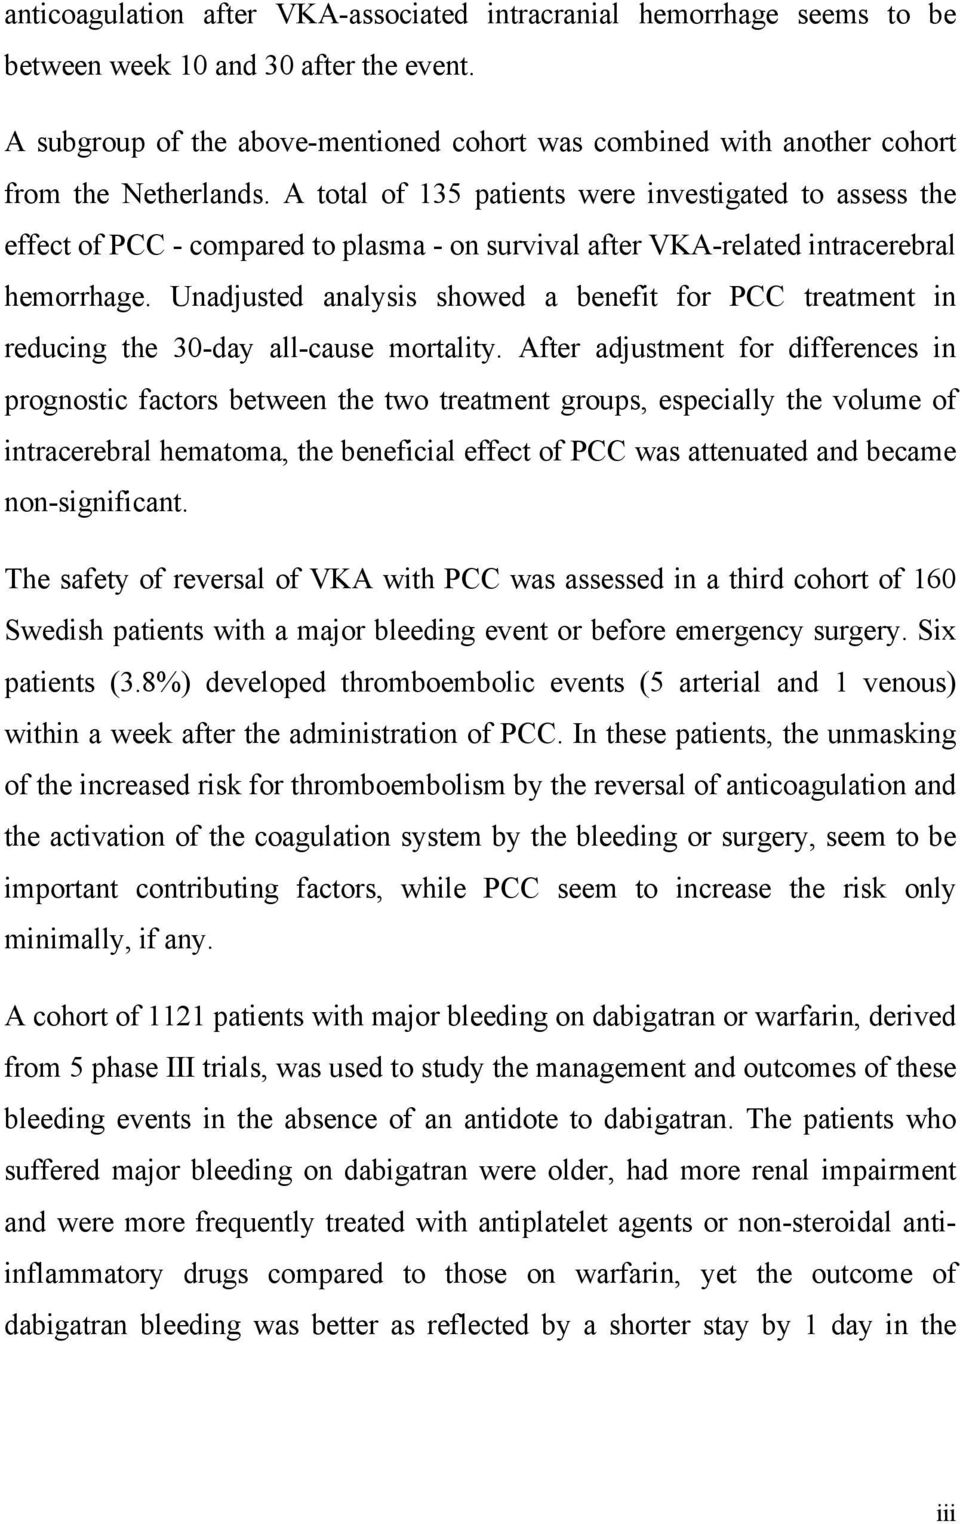 A total of 135 patients were investigated to assess the effect of PCC - compared to plasma - on survival after VKA-related intracerebral hemorrhage.